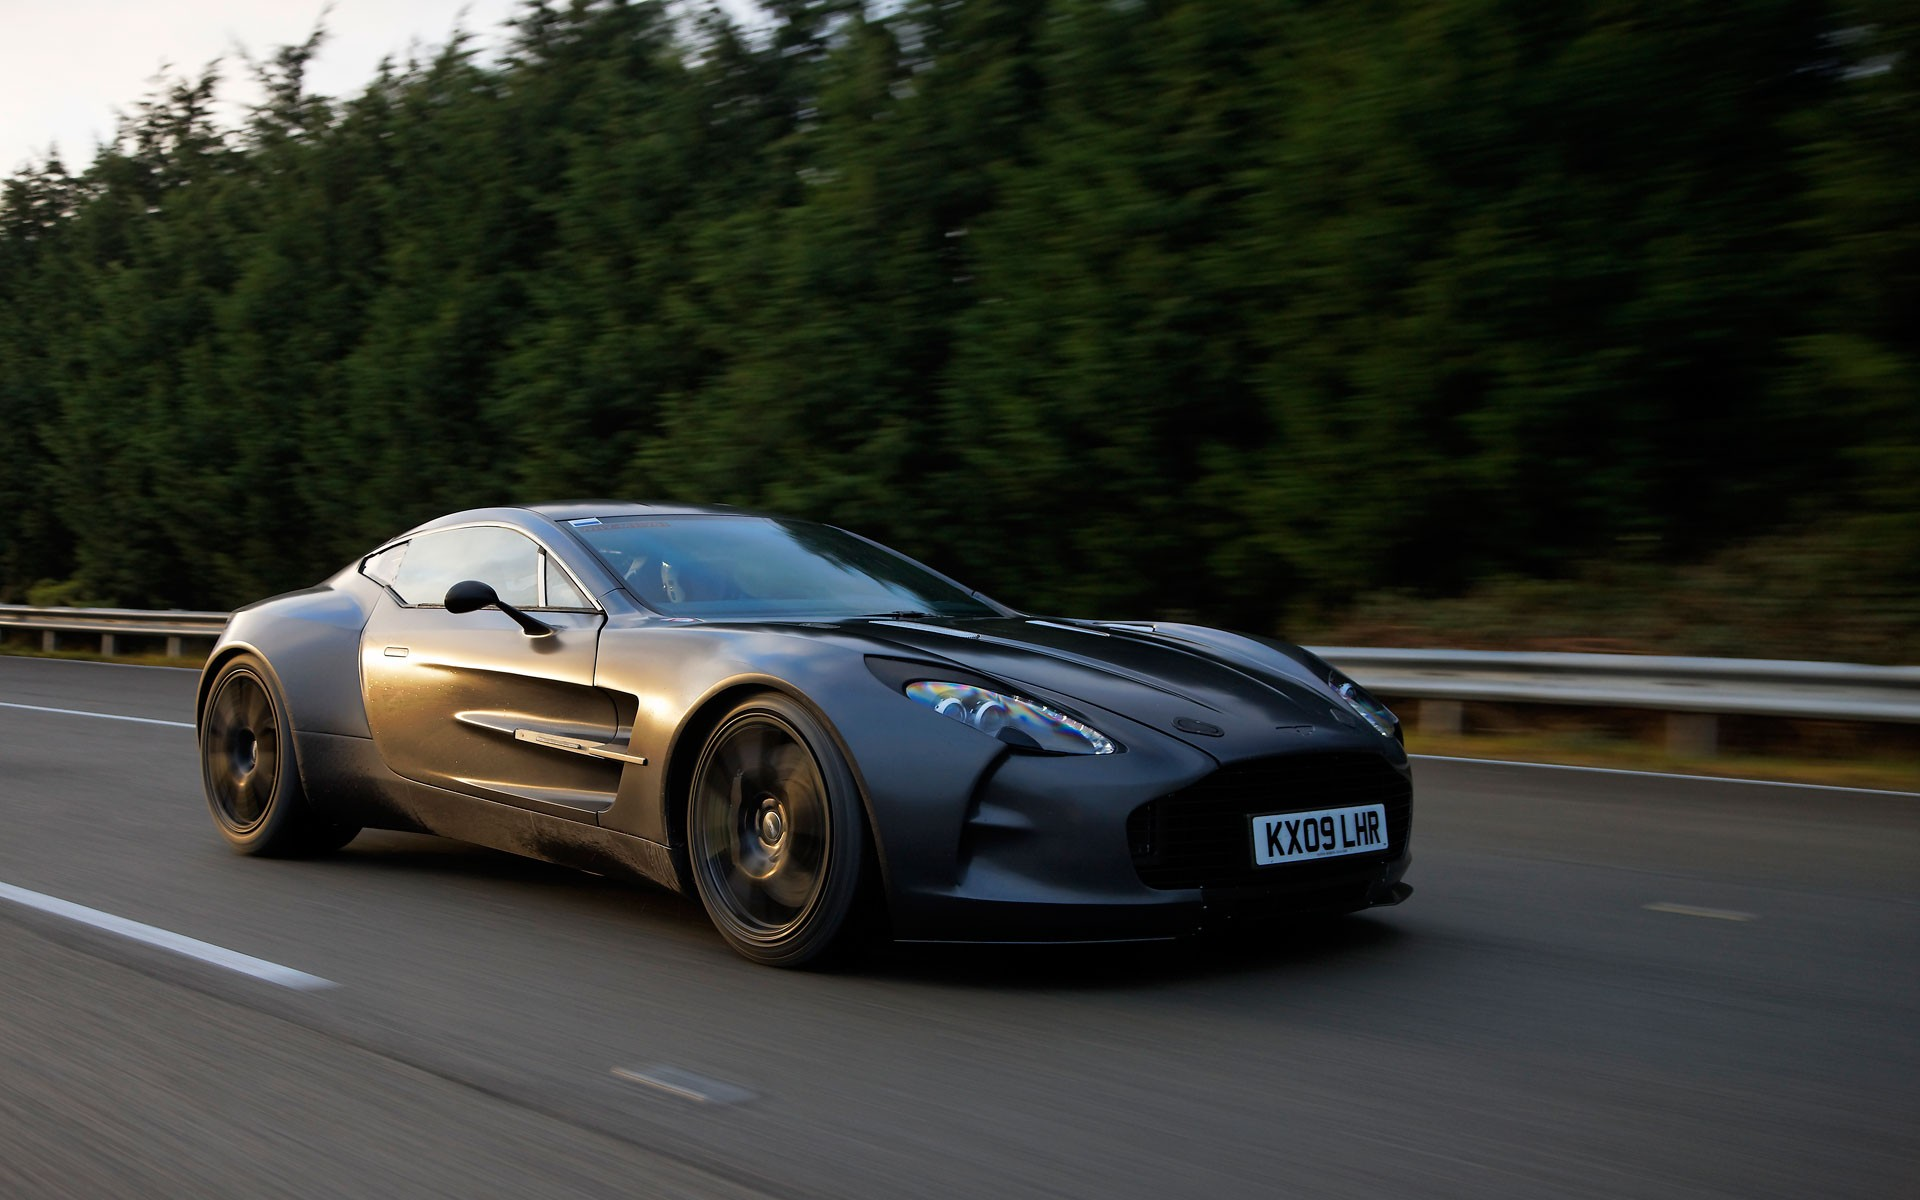 Aston martin project photo - 3